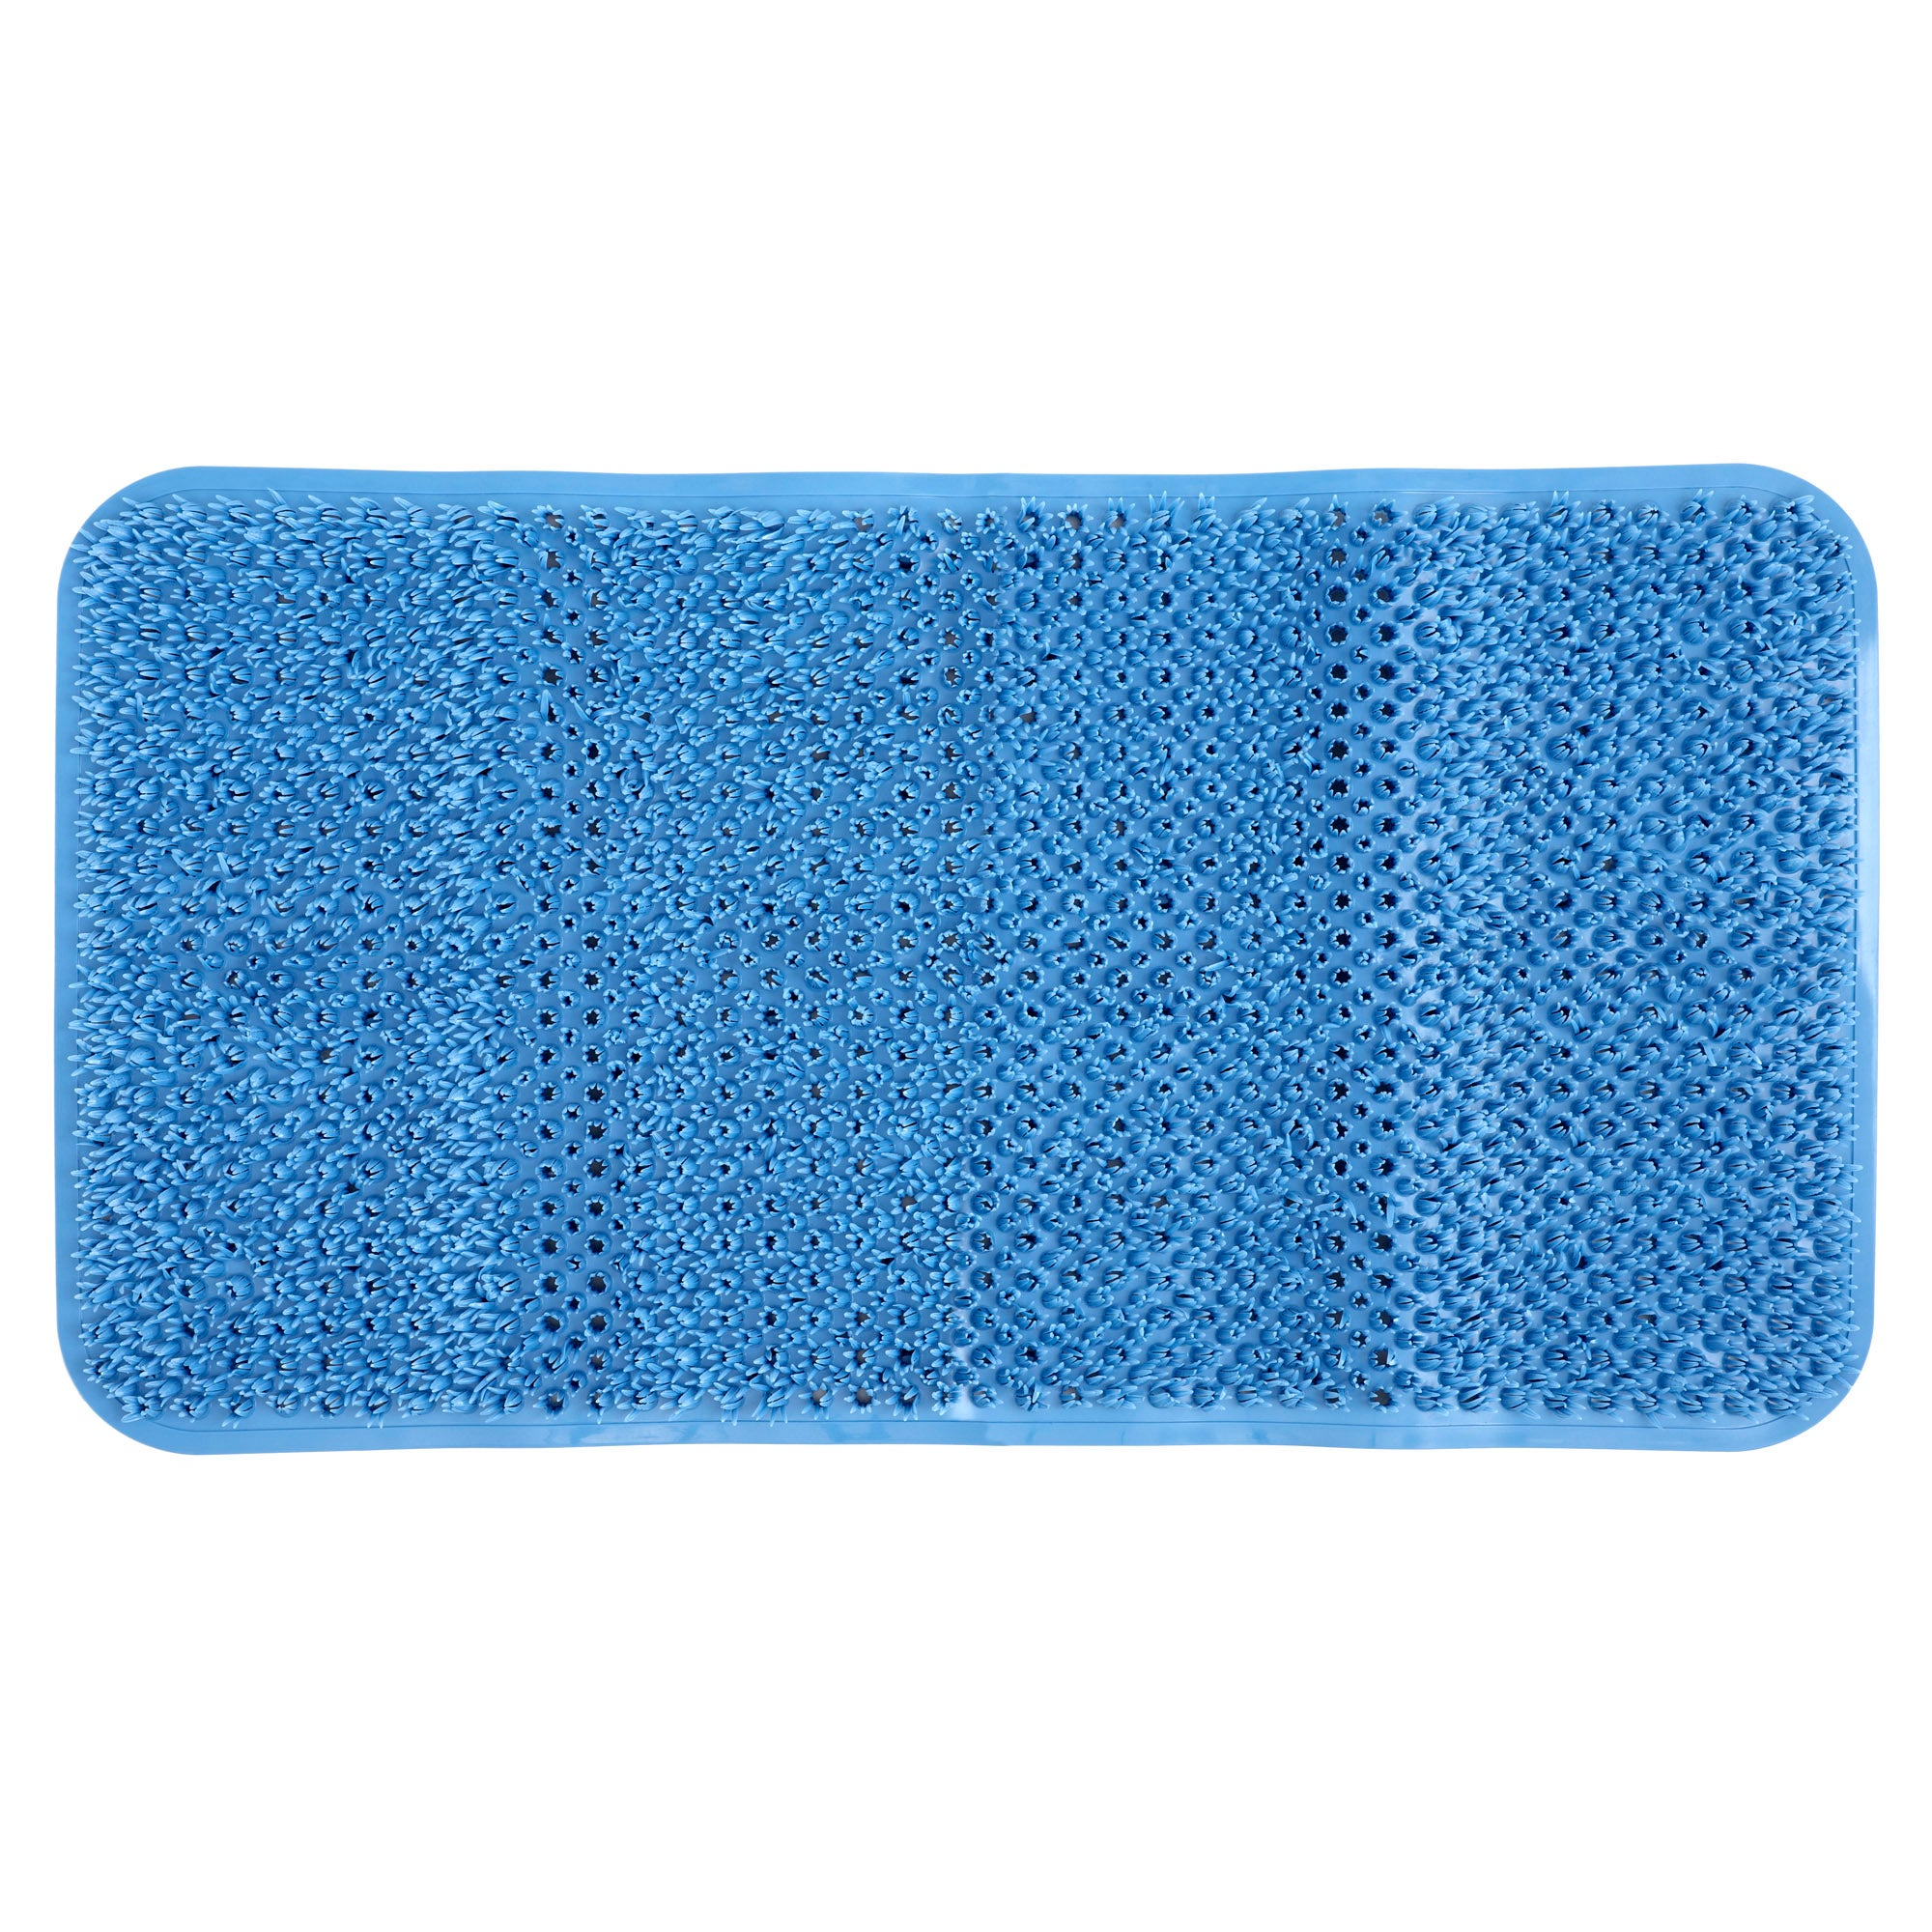 Blue Comfort Bath Mat